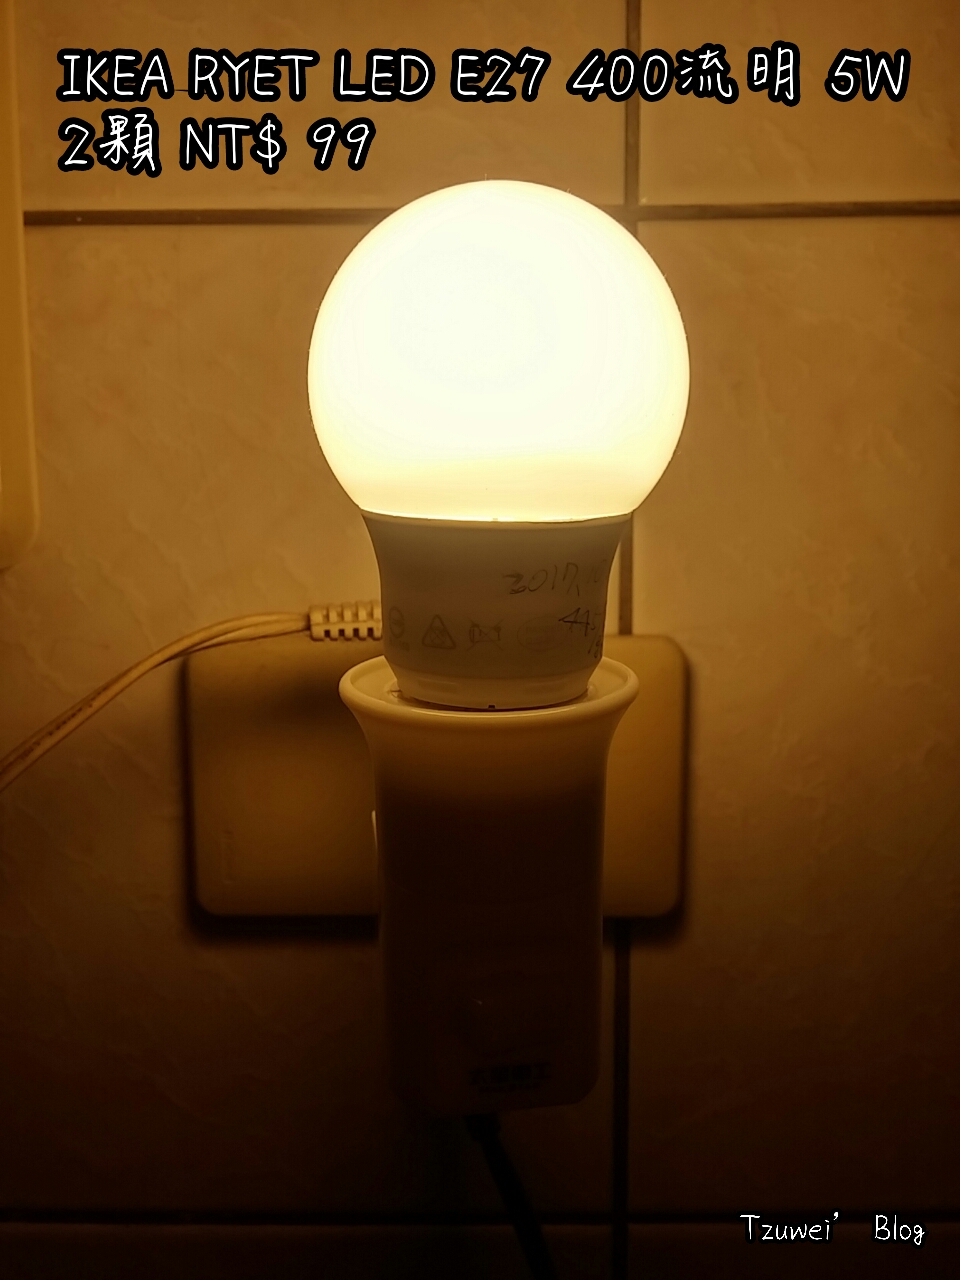 Tzuwei 39 blog ikea ryet led e27 5w 400im 2 nt 99 - Ikea led e27 ...